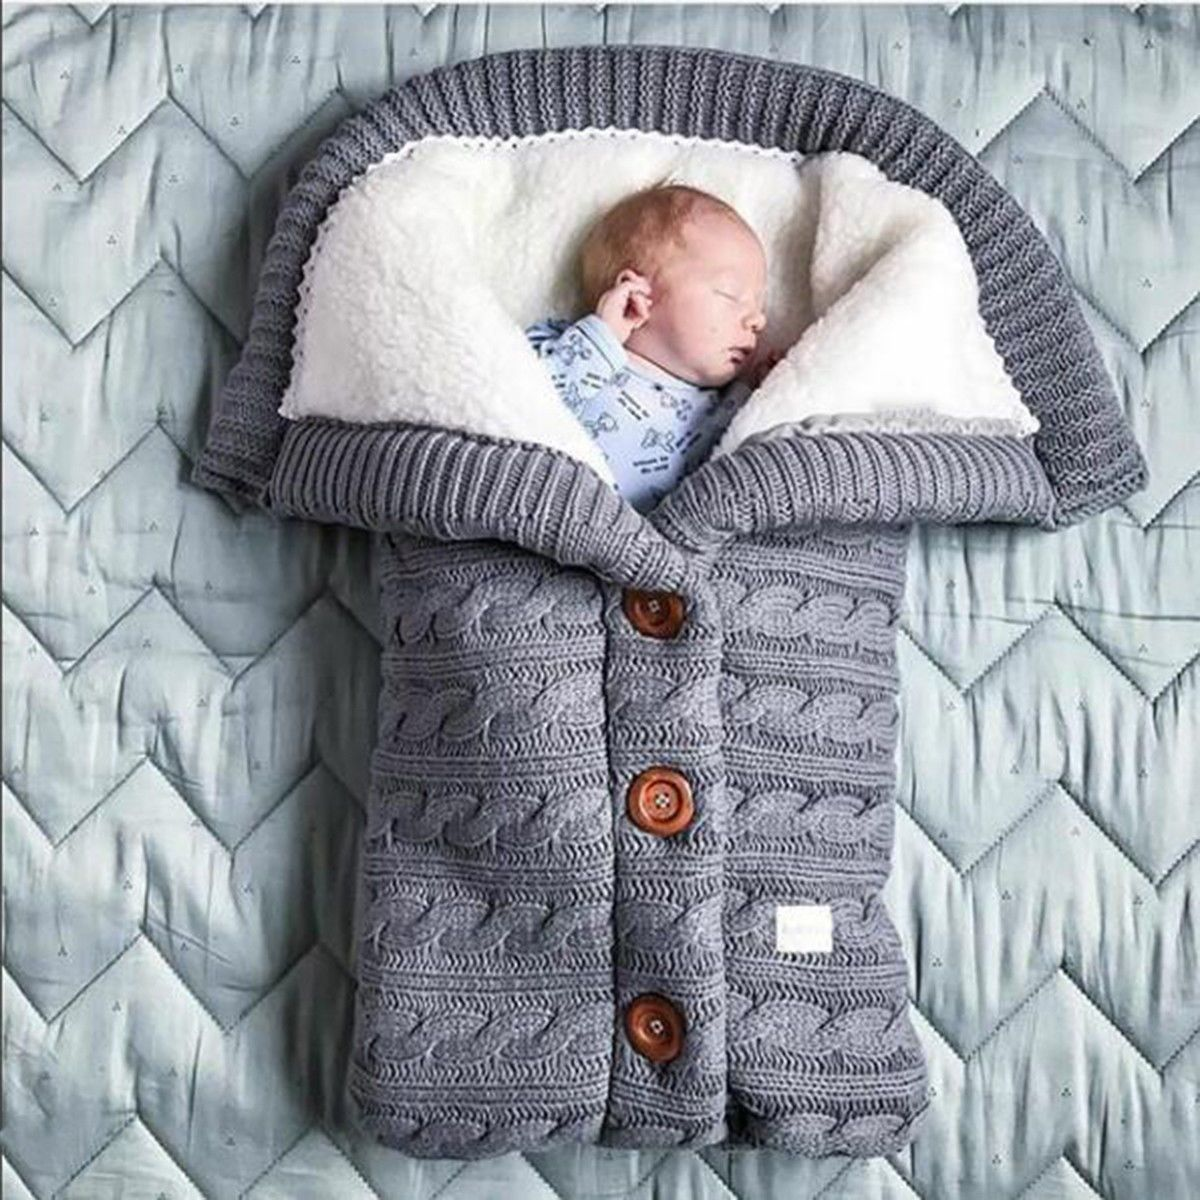 Baby Hand Knit Sleeping Bag - Buy 2 Free Shipping